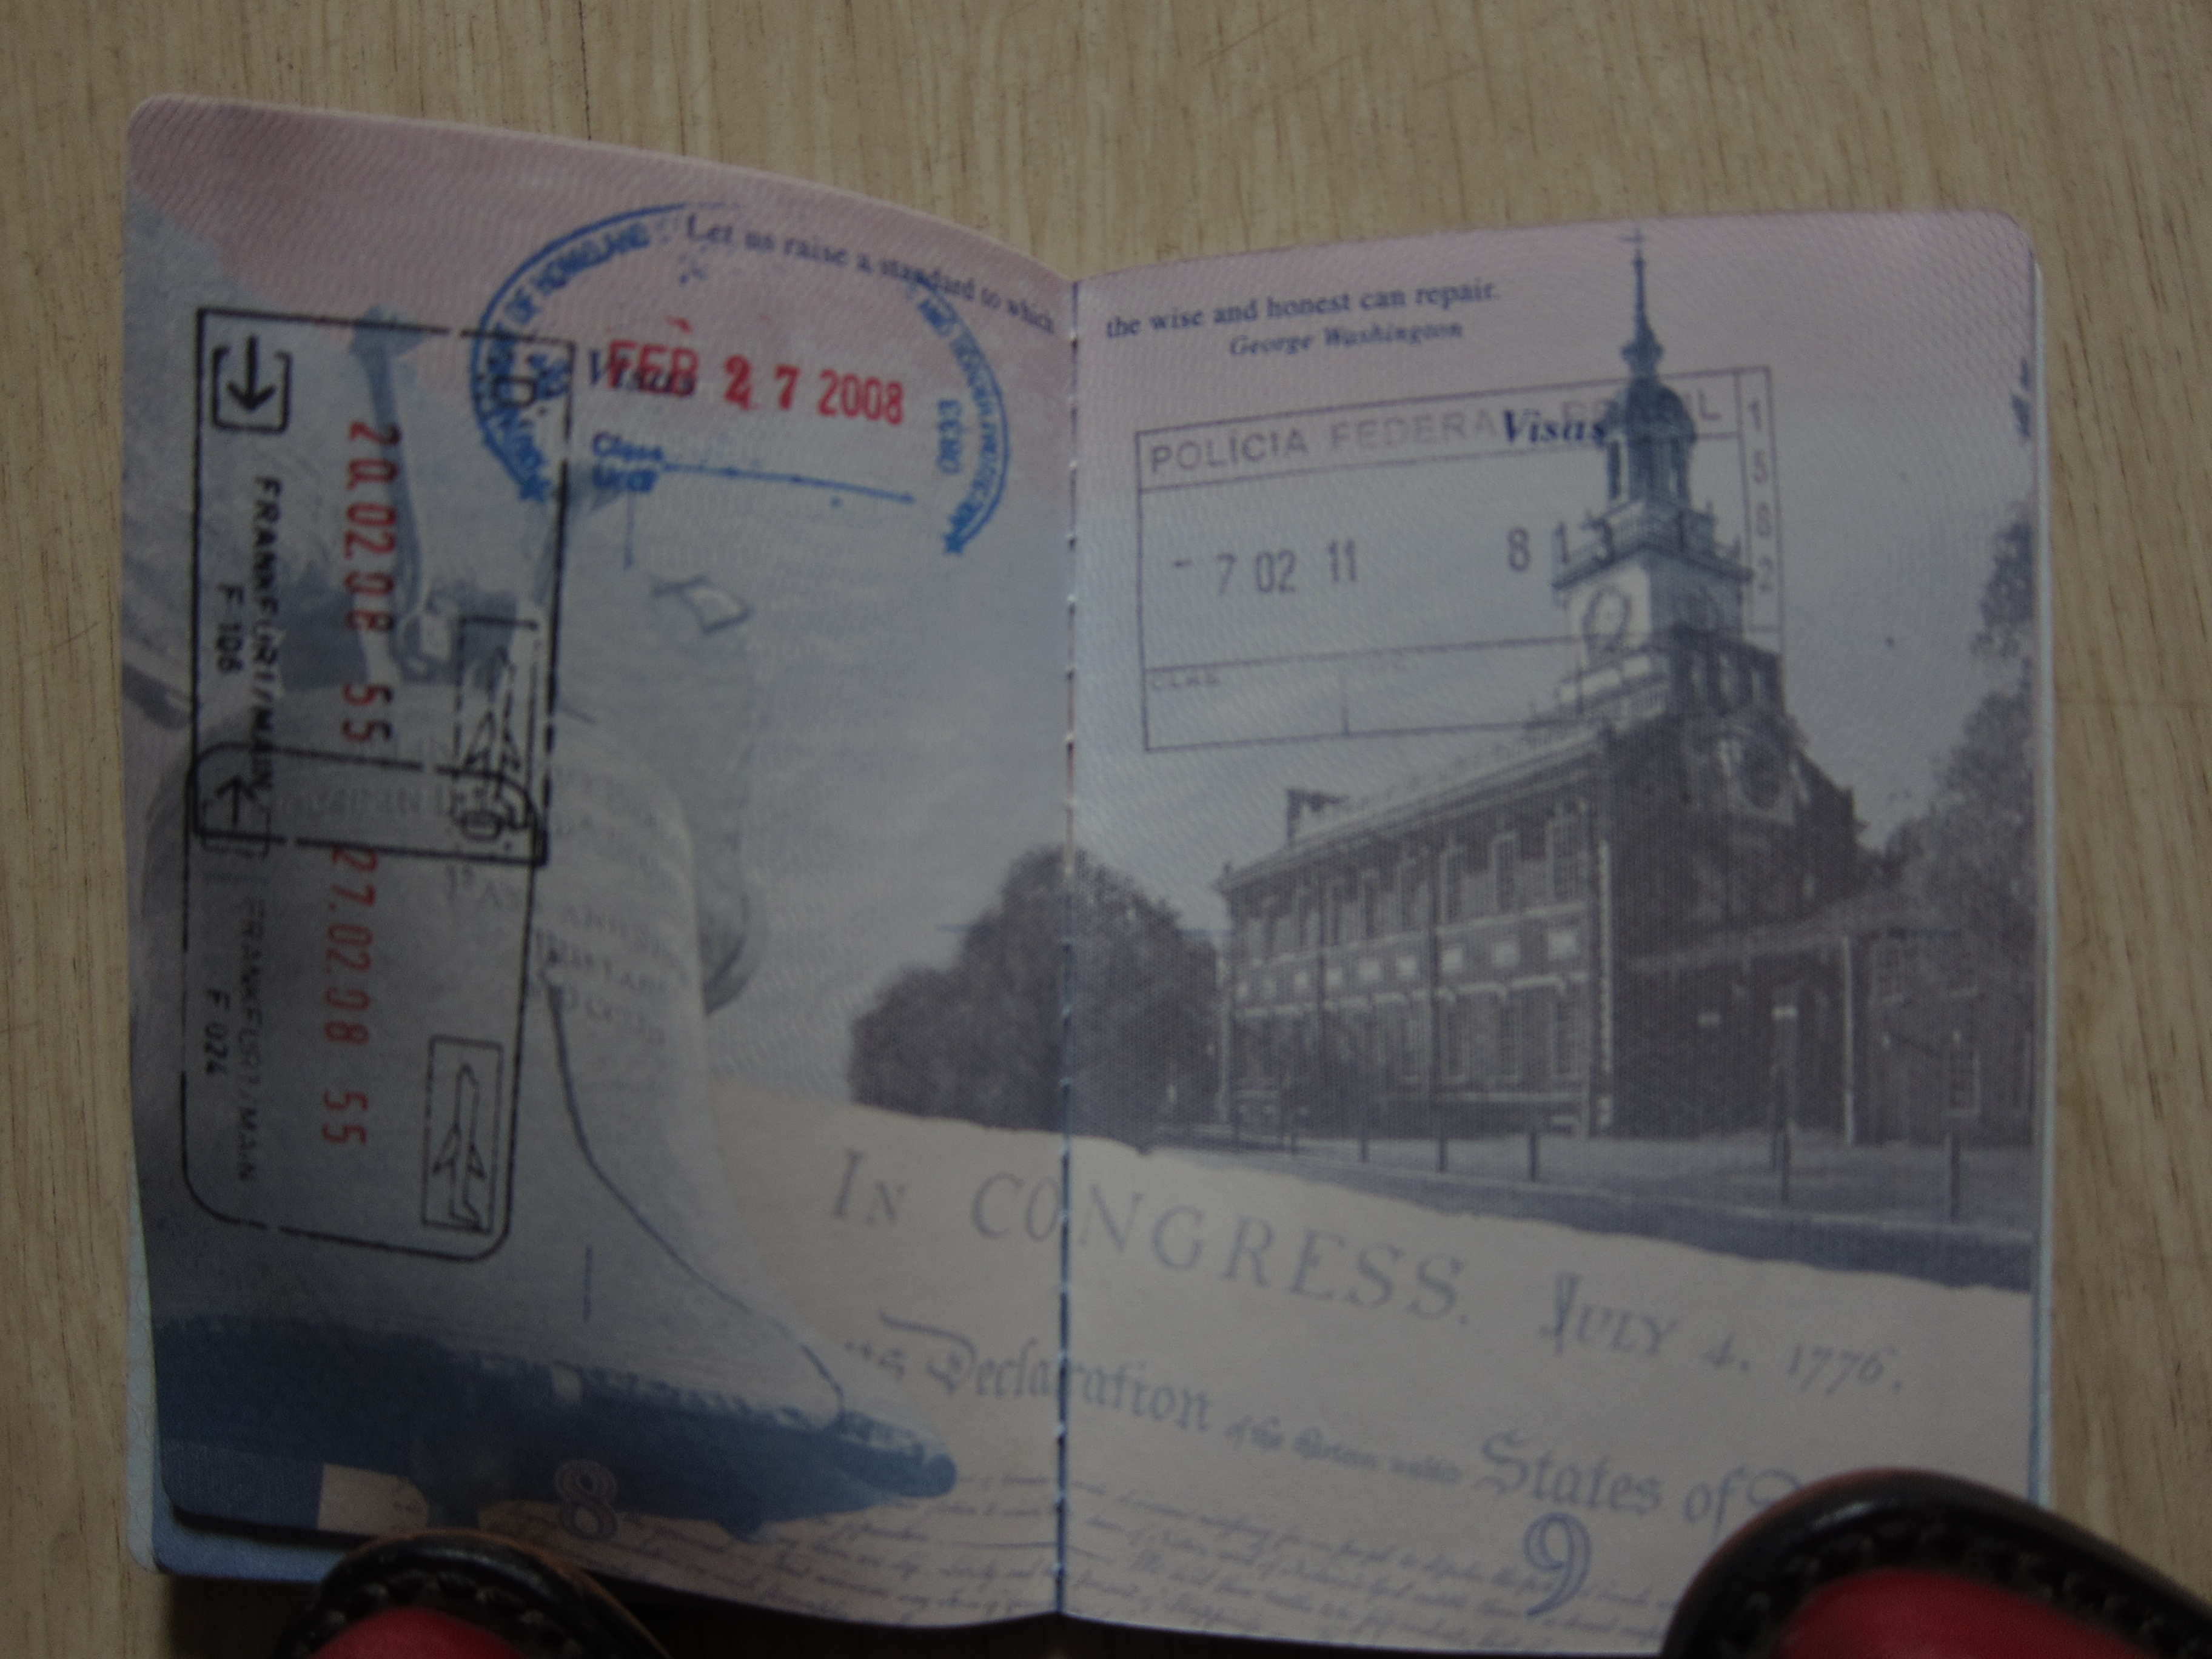 A few more pictures from brazil adventures in agriculture the toes of my red cowboy boots holding down my passport with entry stamp i had to get a visa to enter brazil which was a first for me ccuart Choice Image